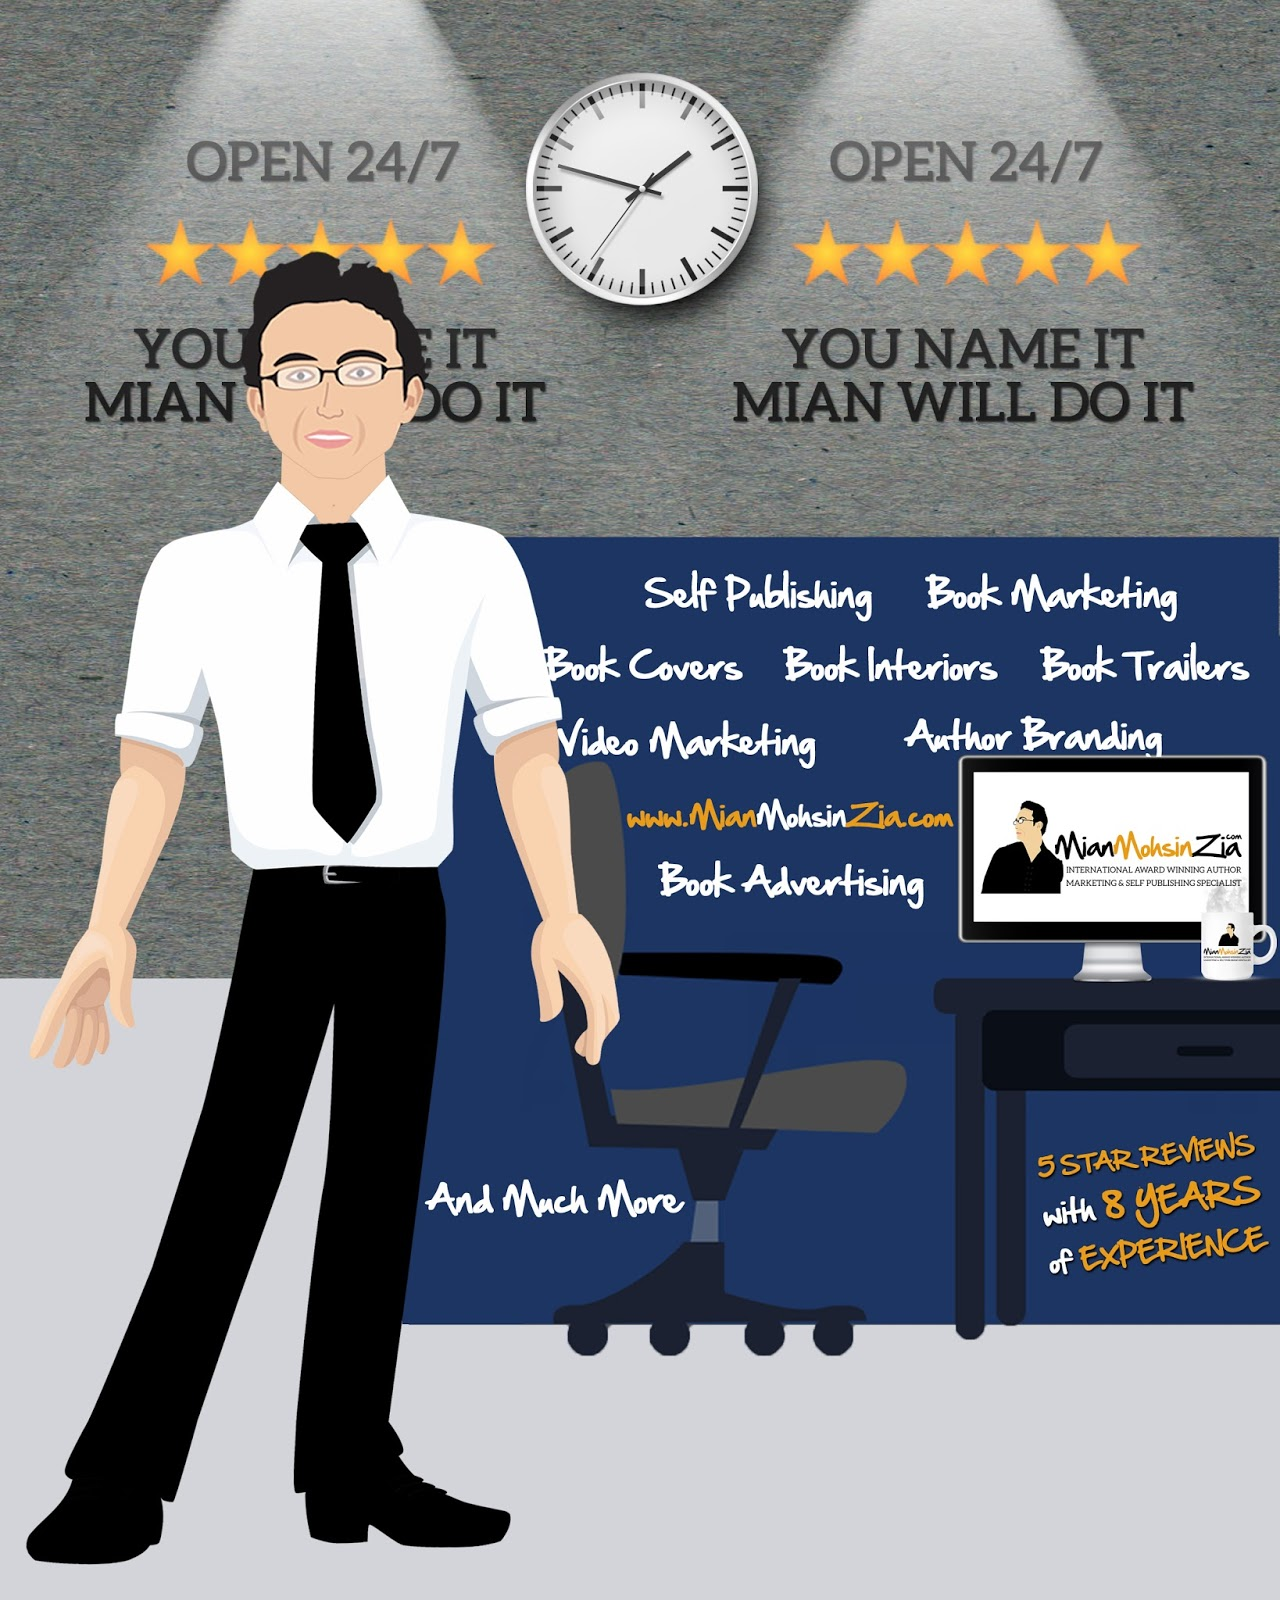 Contact marketing specialist Mian Mohsin Zia for marketing your book I love the work Mian has done for my own book. If you are looking for a marketing specialist Mian is your man.